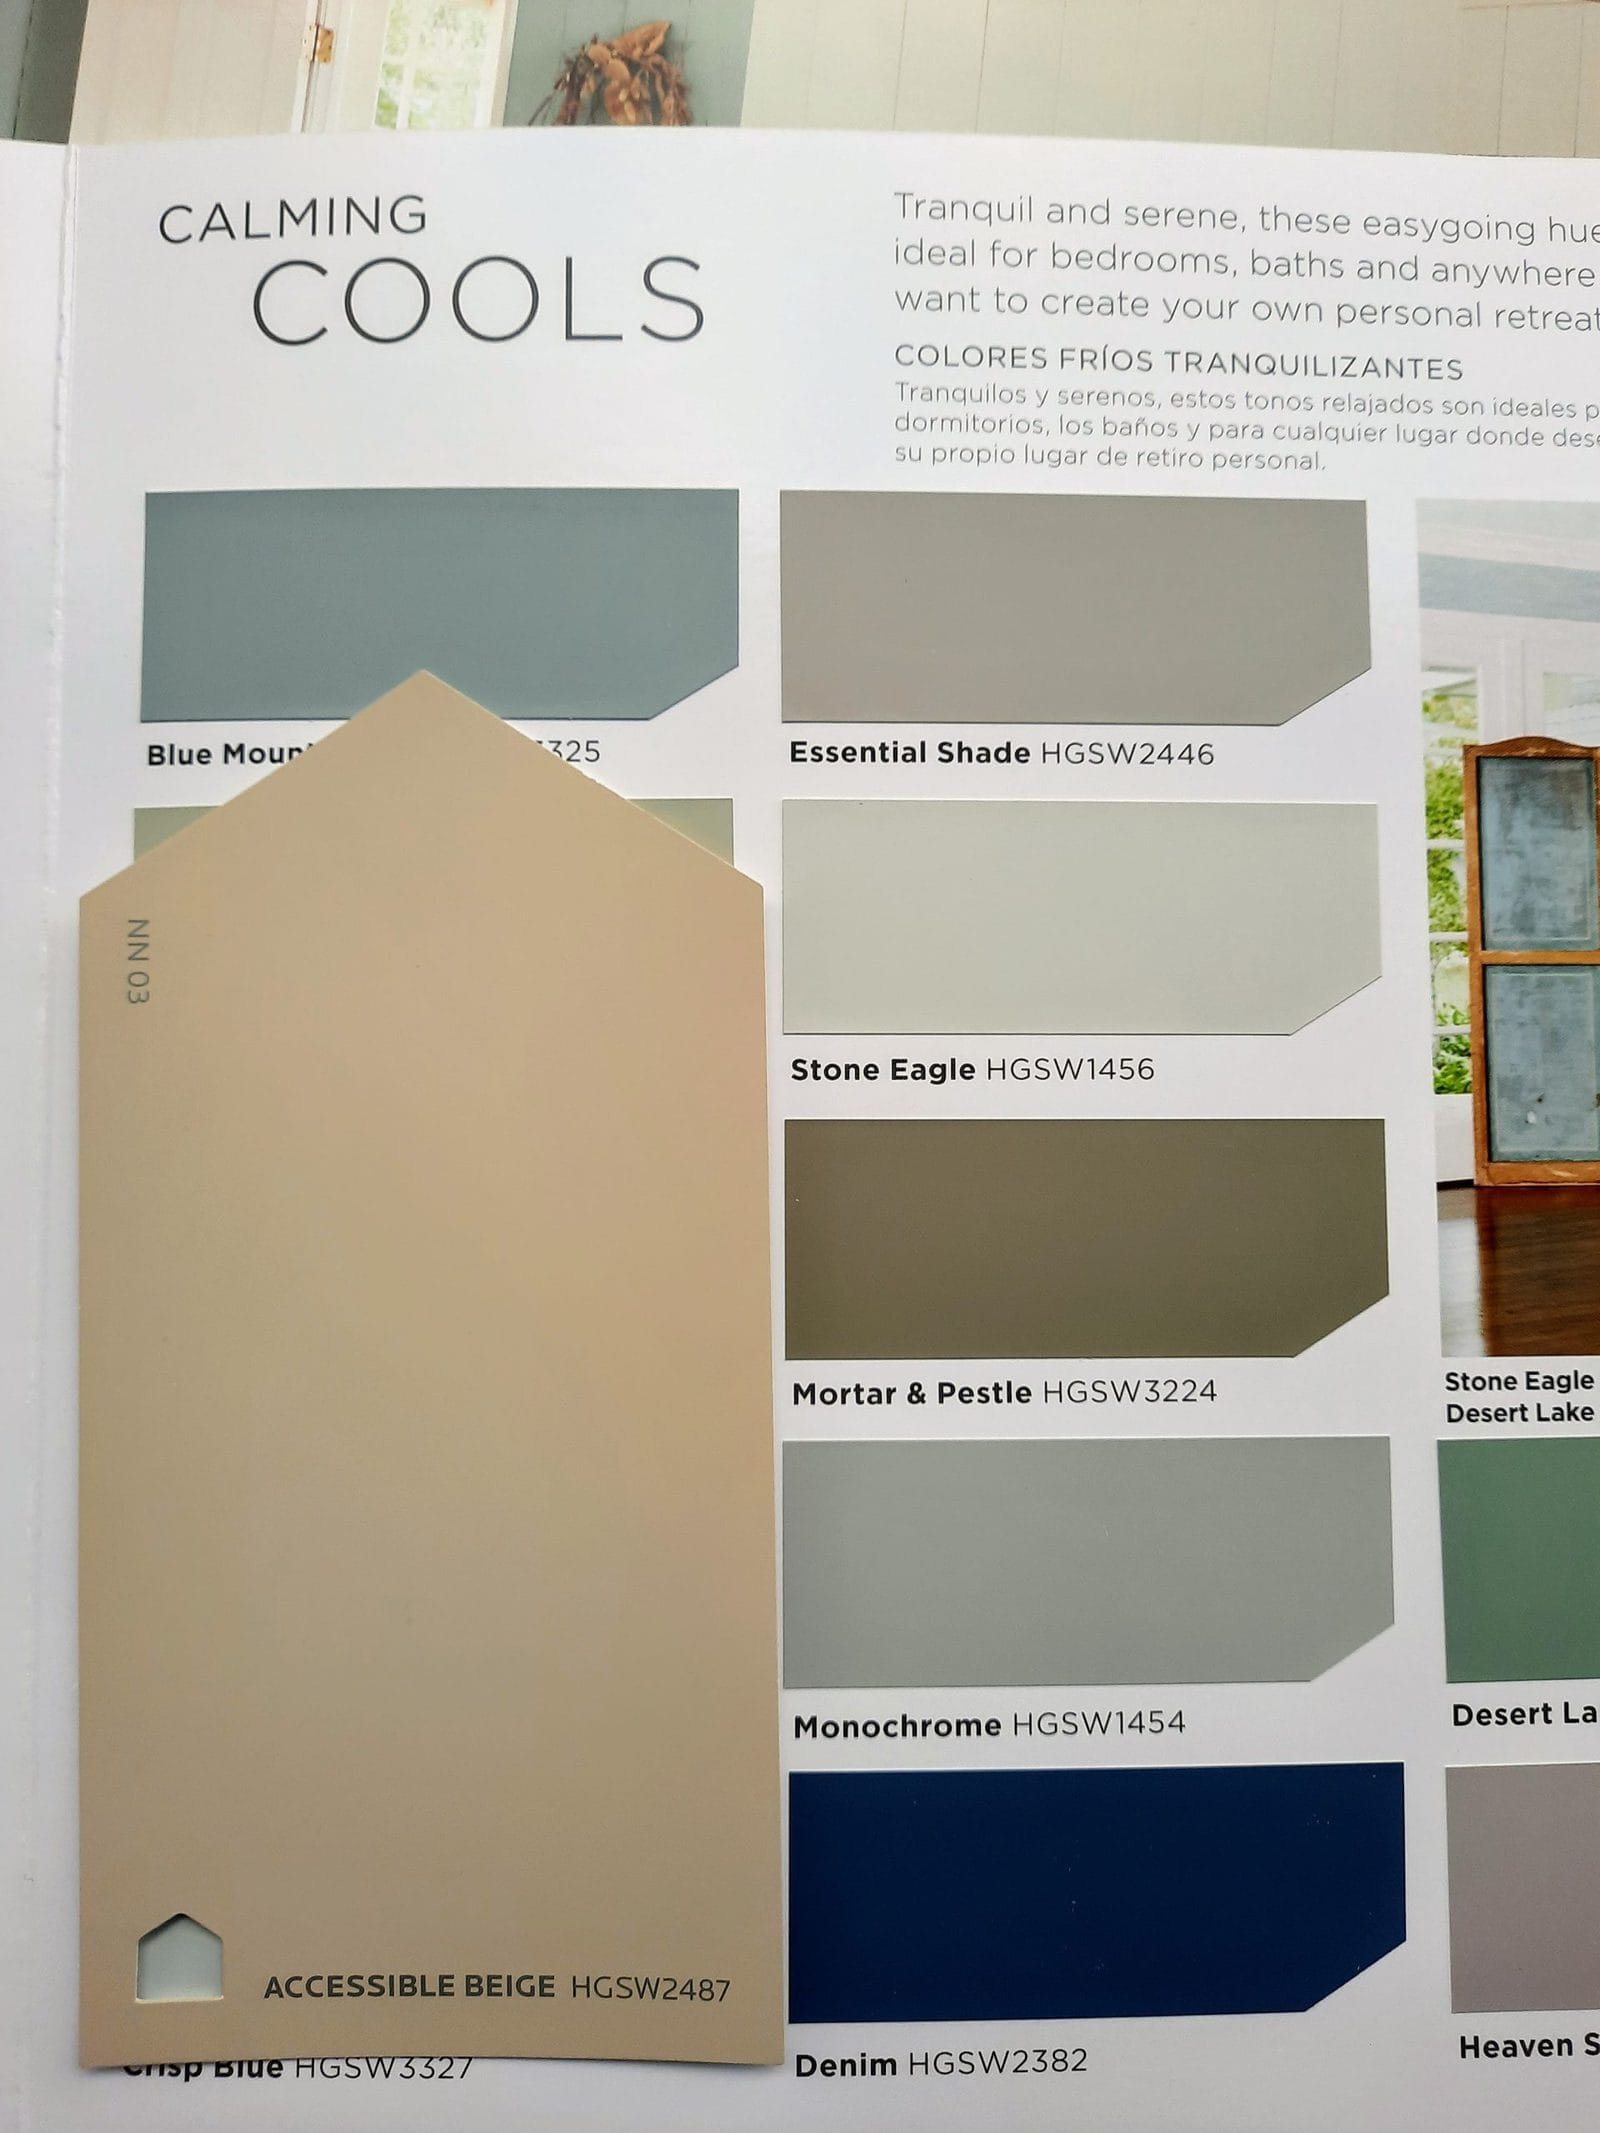 4 Accessible Beige Coordinating Colors scaled